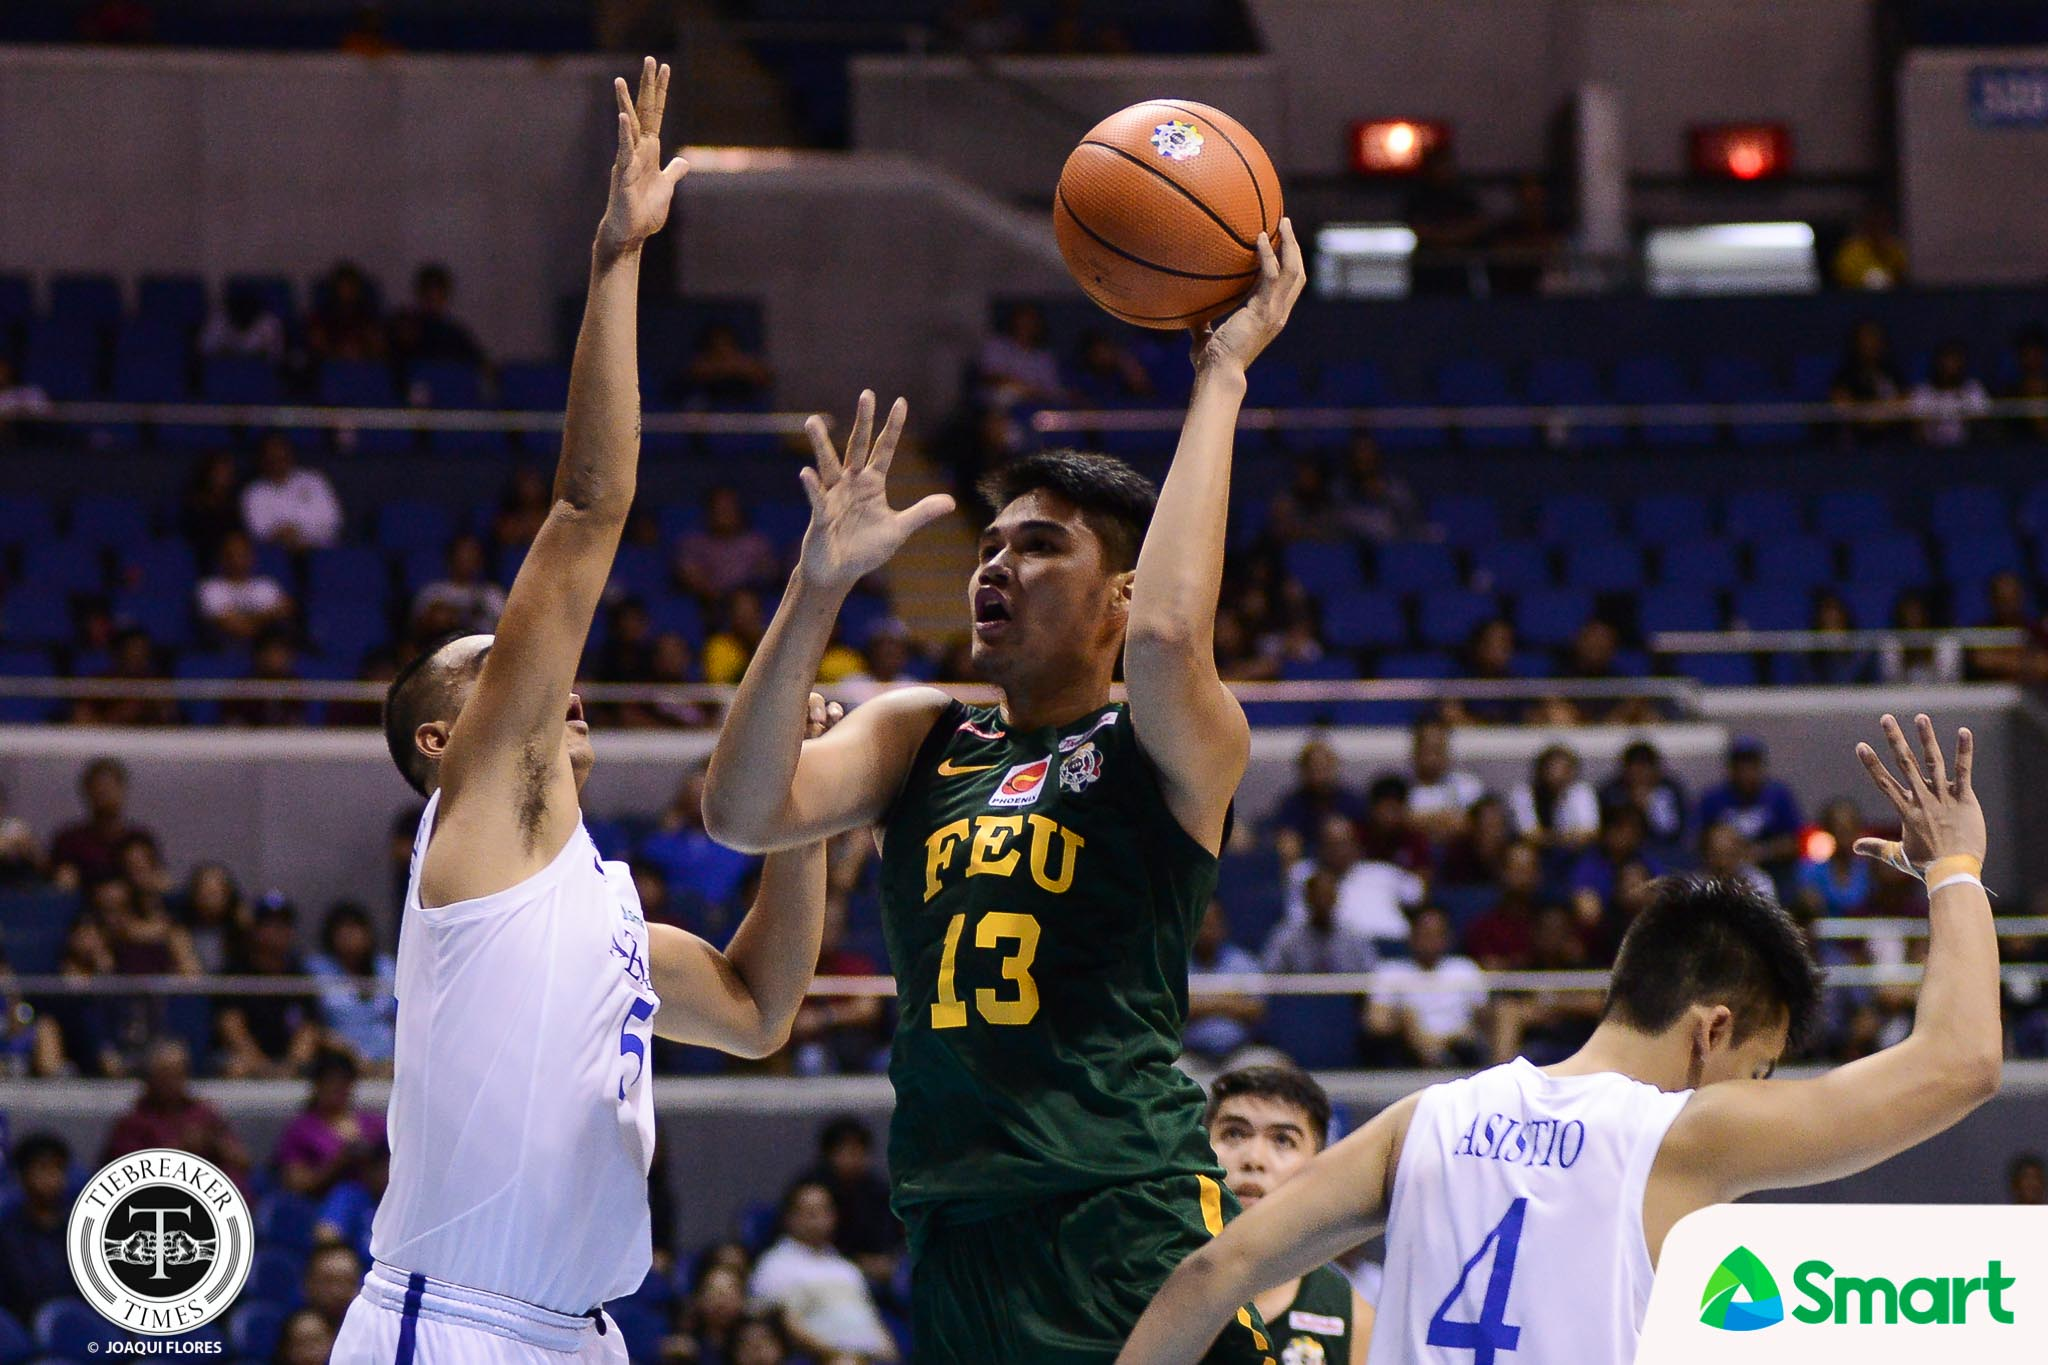 Philippine Sports News - Tiebreaker Times Blue Eagles turned Tamaraws show up big time in Final Four Basketball FEU News UAAP  UAAP Season 80 Men's Basketball UAAP Season 80 Hubert Cani FEU Men's Basketball Arvin Tolentino